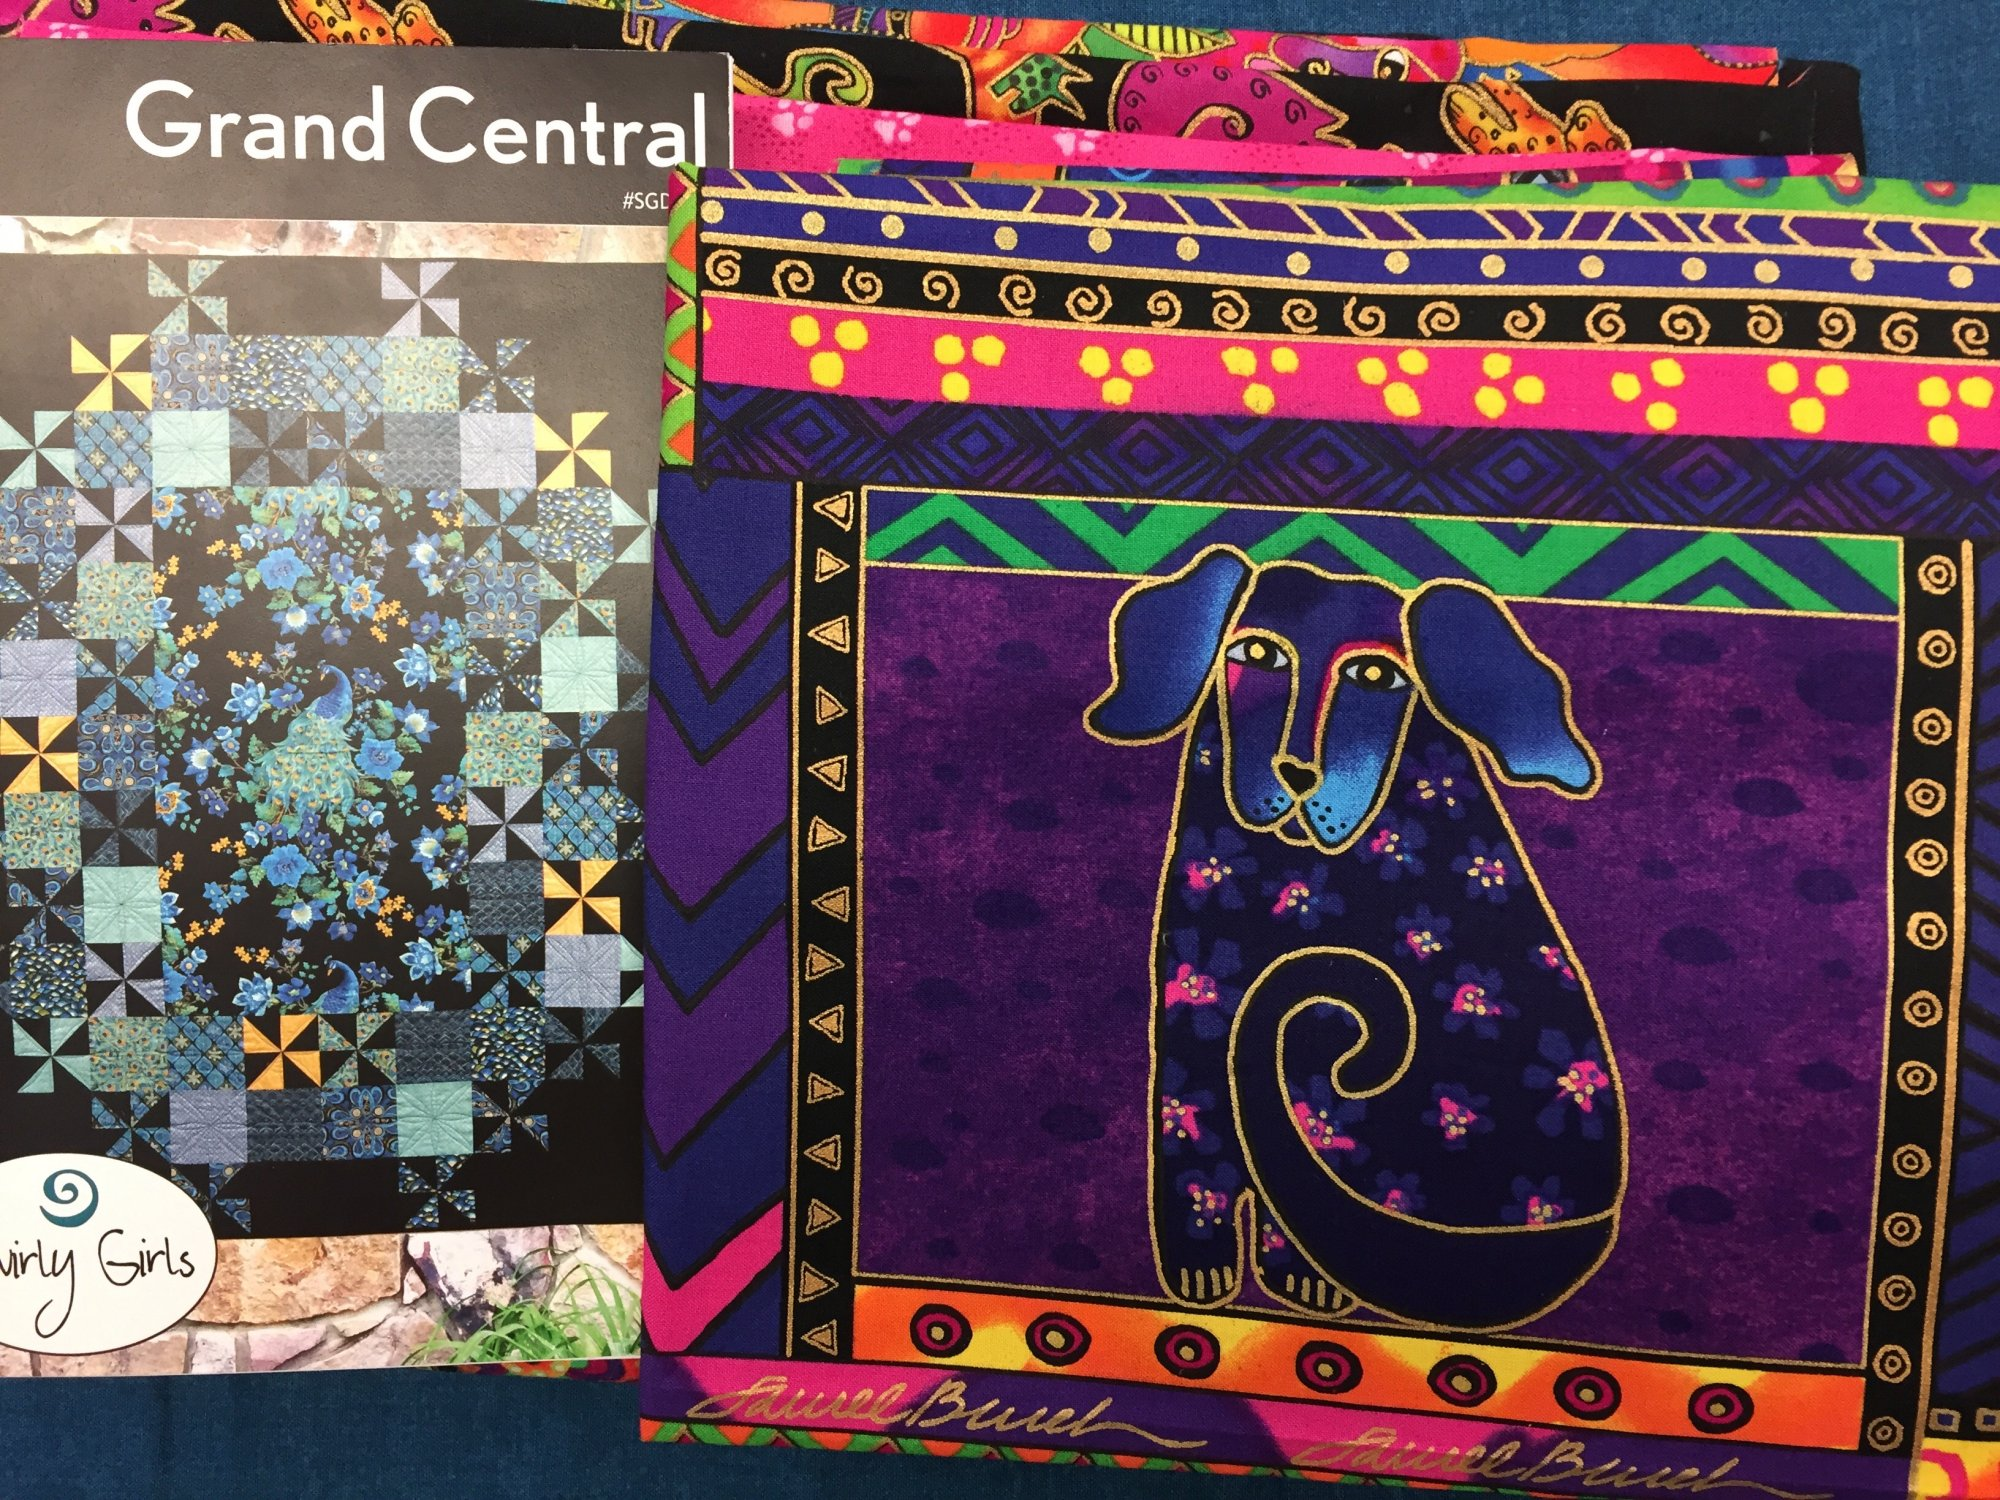 Grand Central Quilt Kit featuring Dogs & Doggies by Laurel Burch